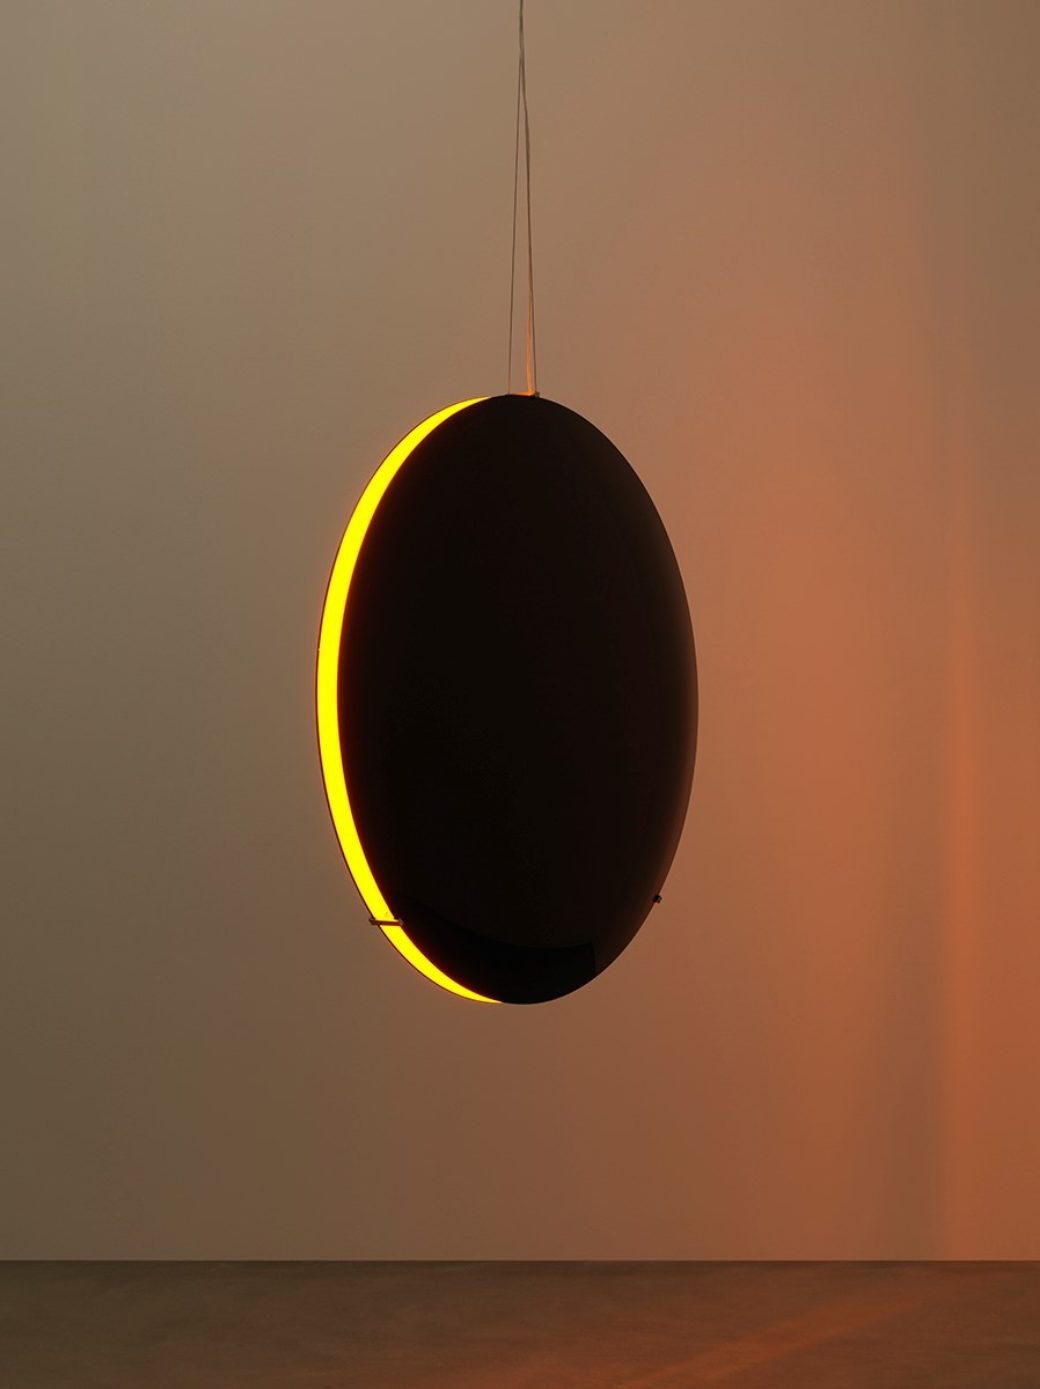 Olafur Eliasson, Black Glass Eclipse